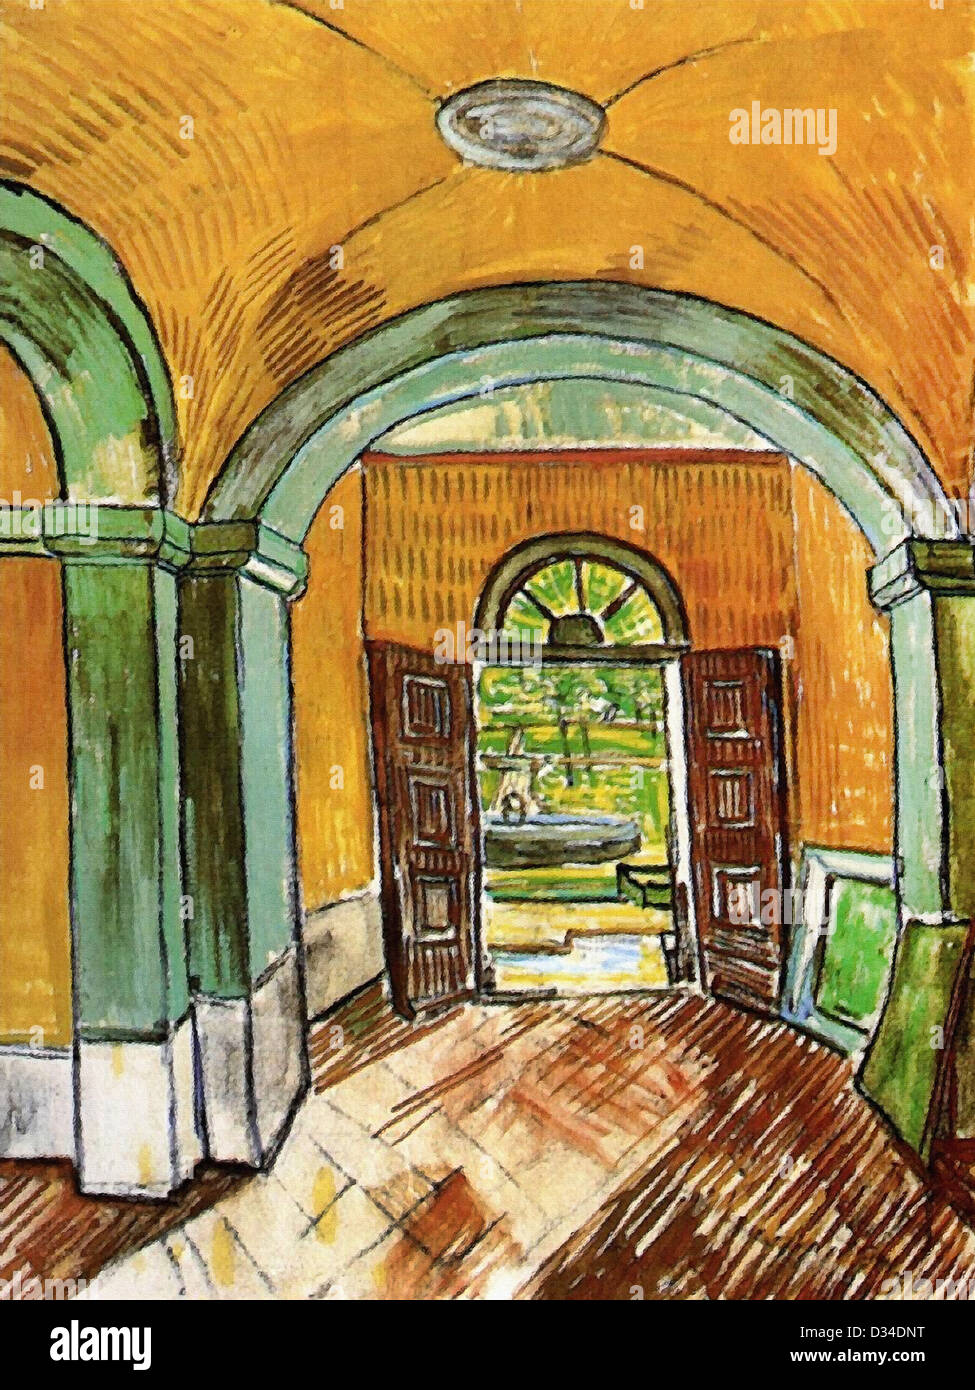 Vincent van Gogh, The Entrance Hall of Saint-Paul Hospital. 1889. Post-Impressionism. Oil on canvas. Van Gogh Museum, - Stock Image